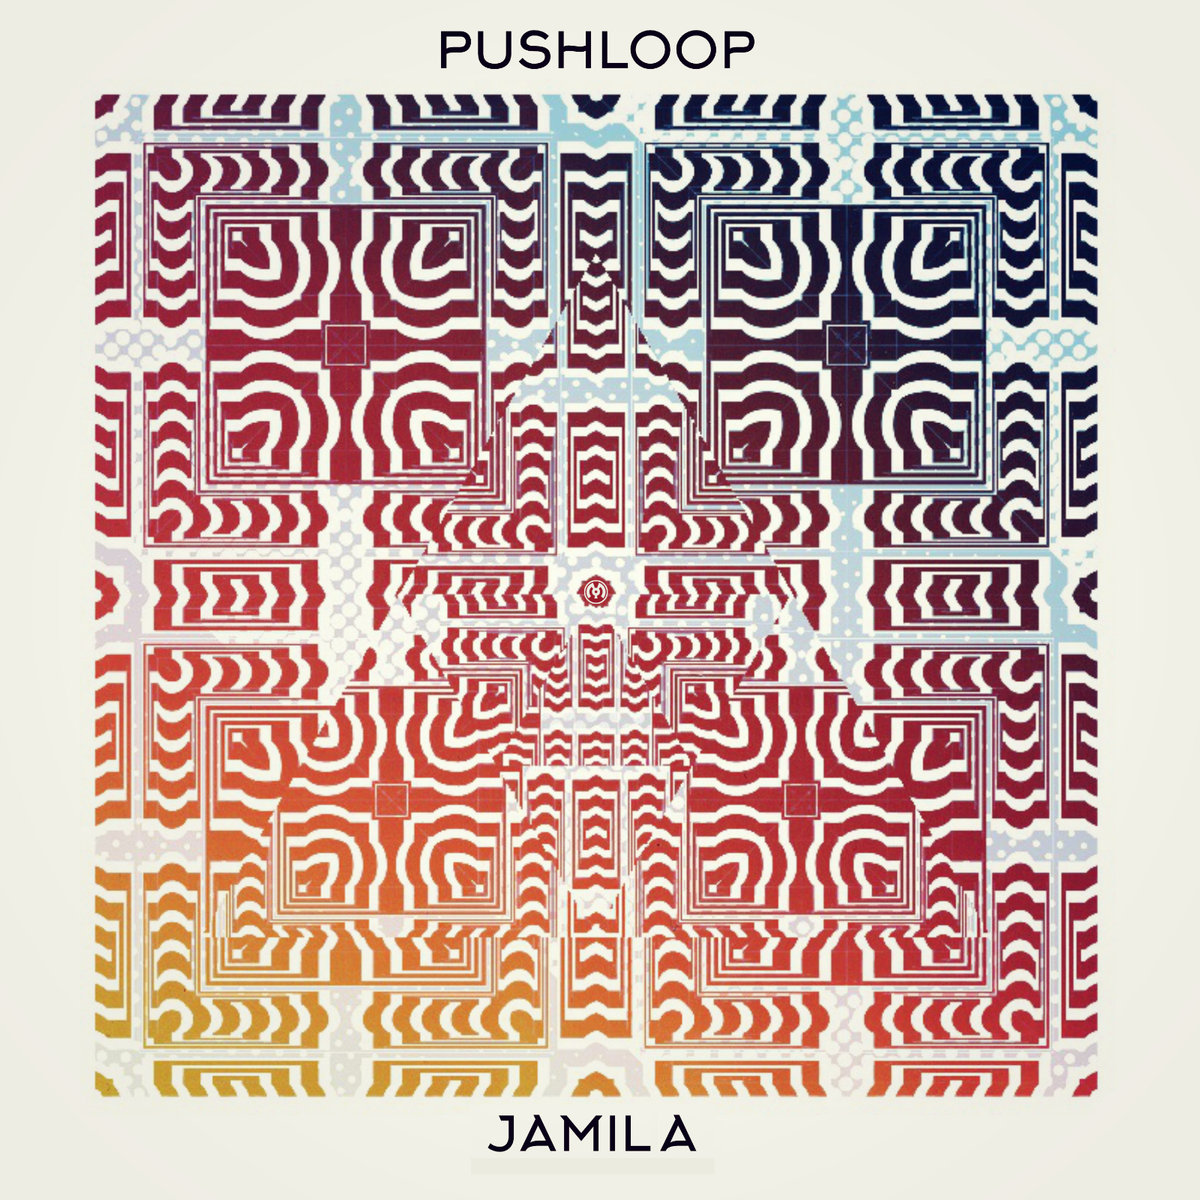 Pushloop - Jamila (artwork)